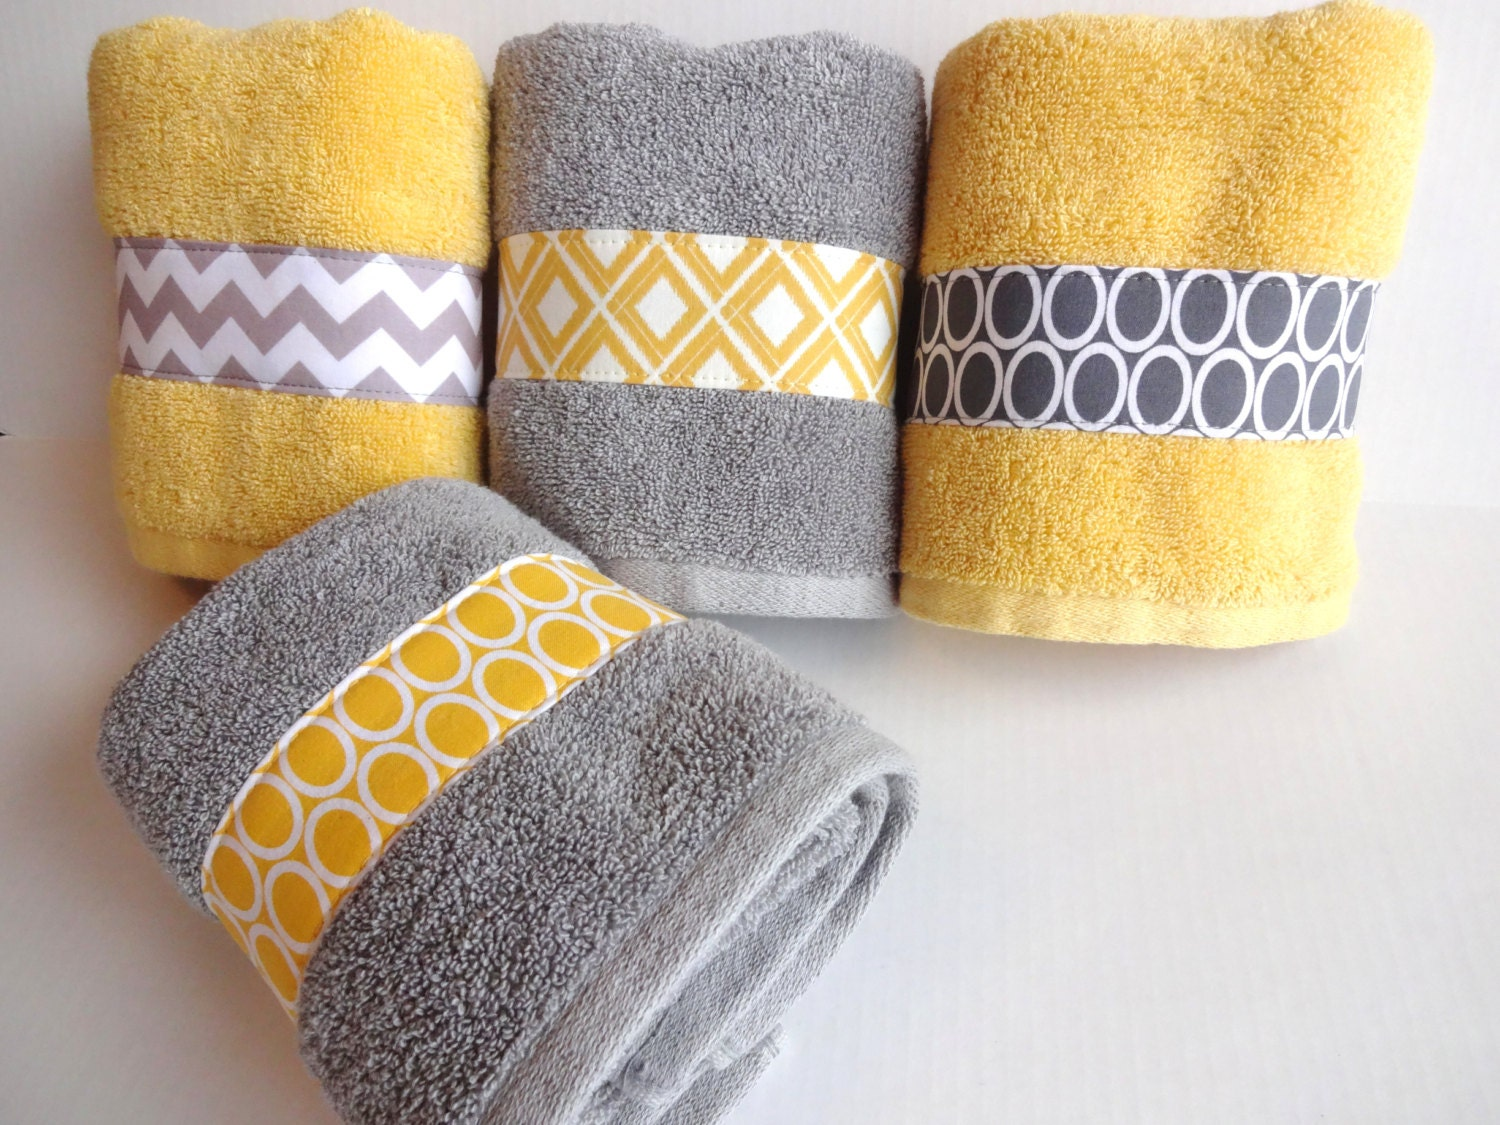 Yellow and Grey Bath Towels  yellow and grey  yellow and gray  yellow  bathroom  grey bathroom  decorated towels  august ave  hand towel. Hand towel   Etsy